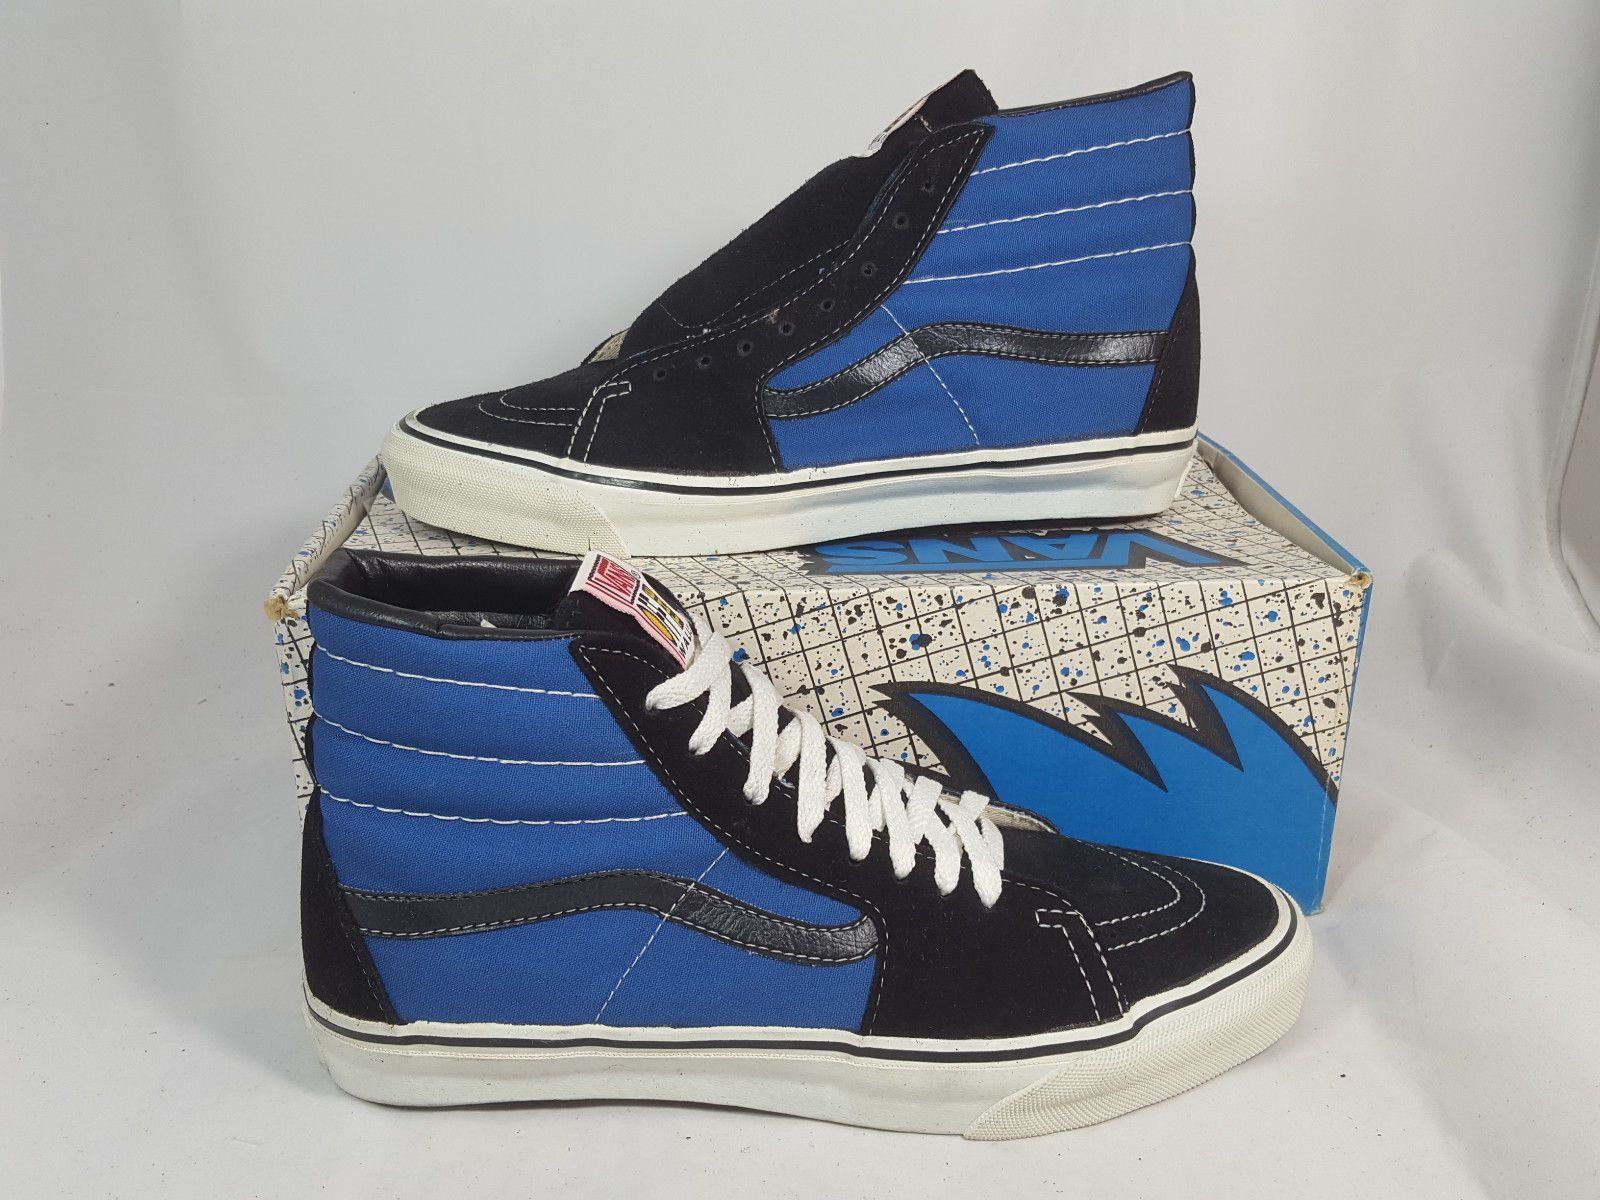 db2e1064db Vintage Vans shoes SK8 HI BLACK BLUE made in USA Men s Size 10.5 NOS Old  Skool